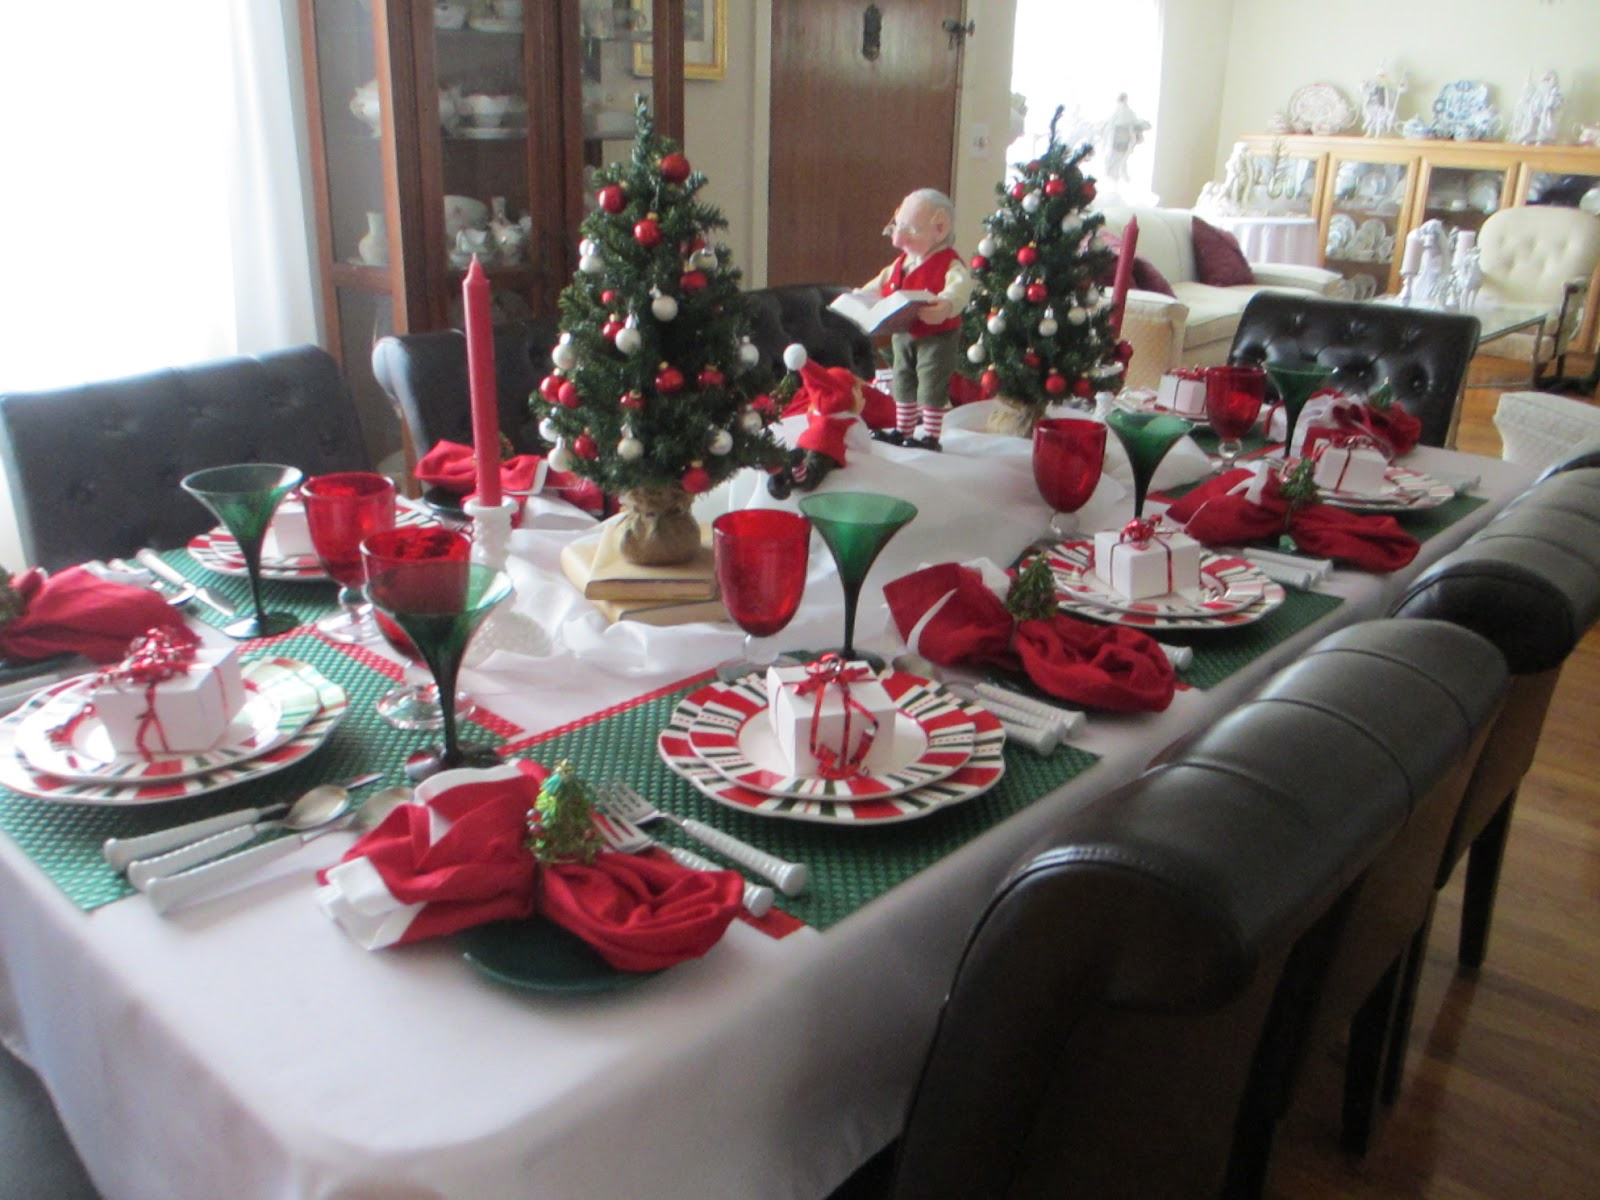 bright and cheery this table captures the spirit of a fun christmas - Twas The Night Before Christmas Decorating Ideas